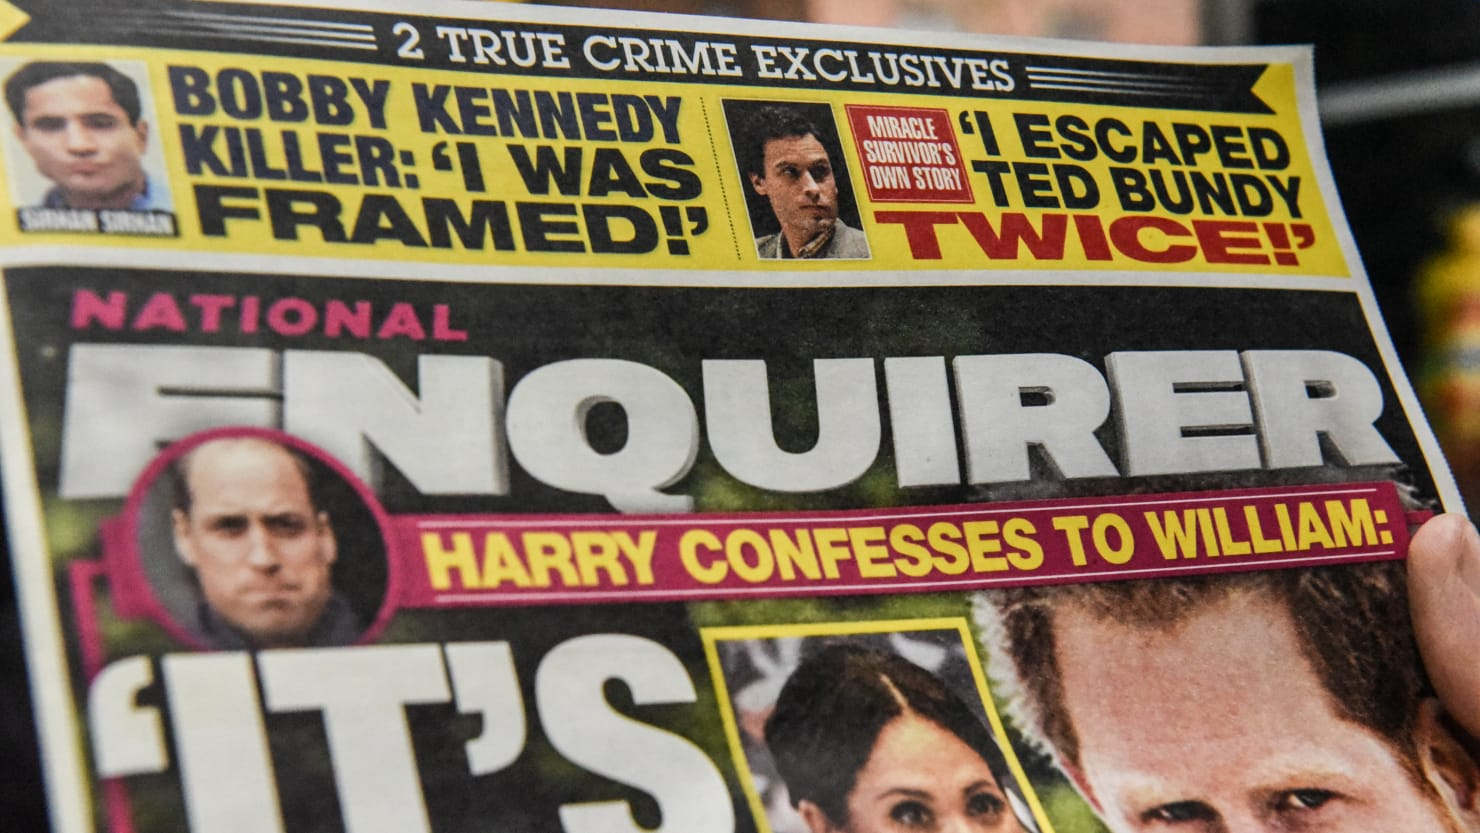 The National Enquirer's David Pecker 'Tried to Extort Me,' Claims Theme Park Promoter